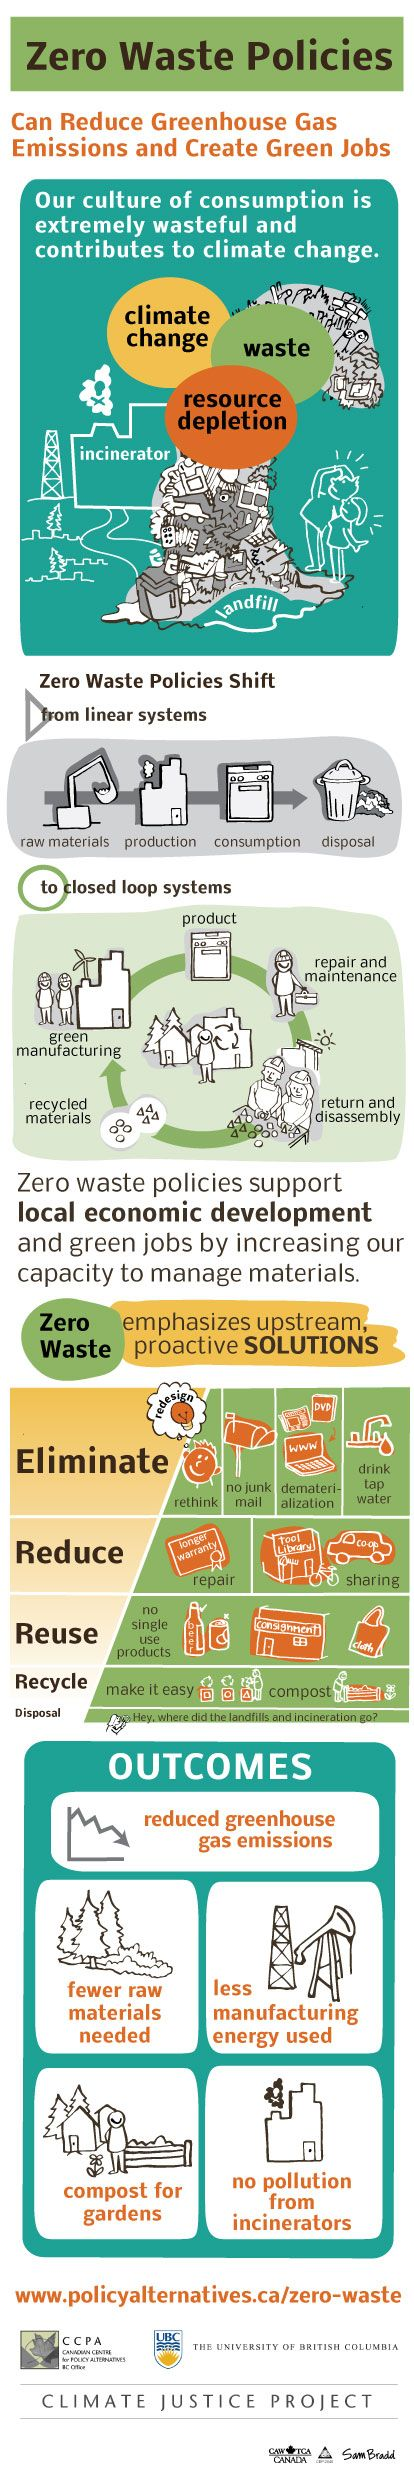 Gift i want to be part of leaving the world: Zero Waste Policies.